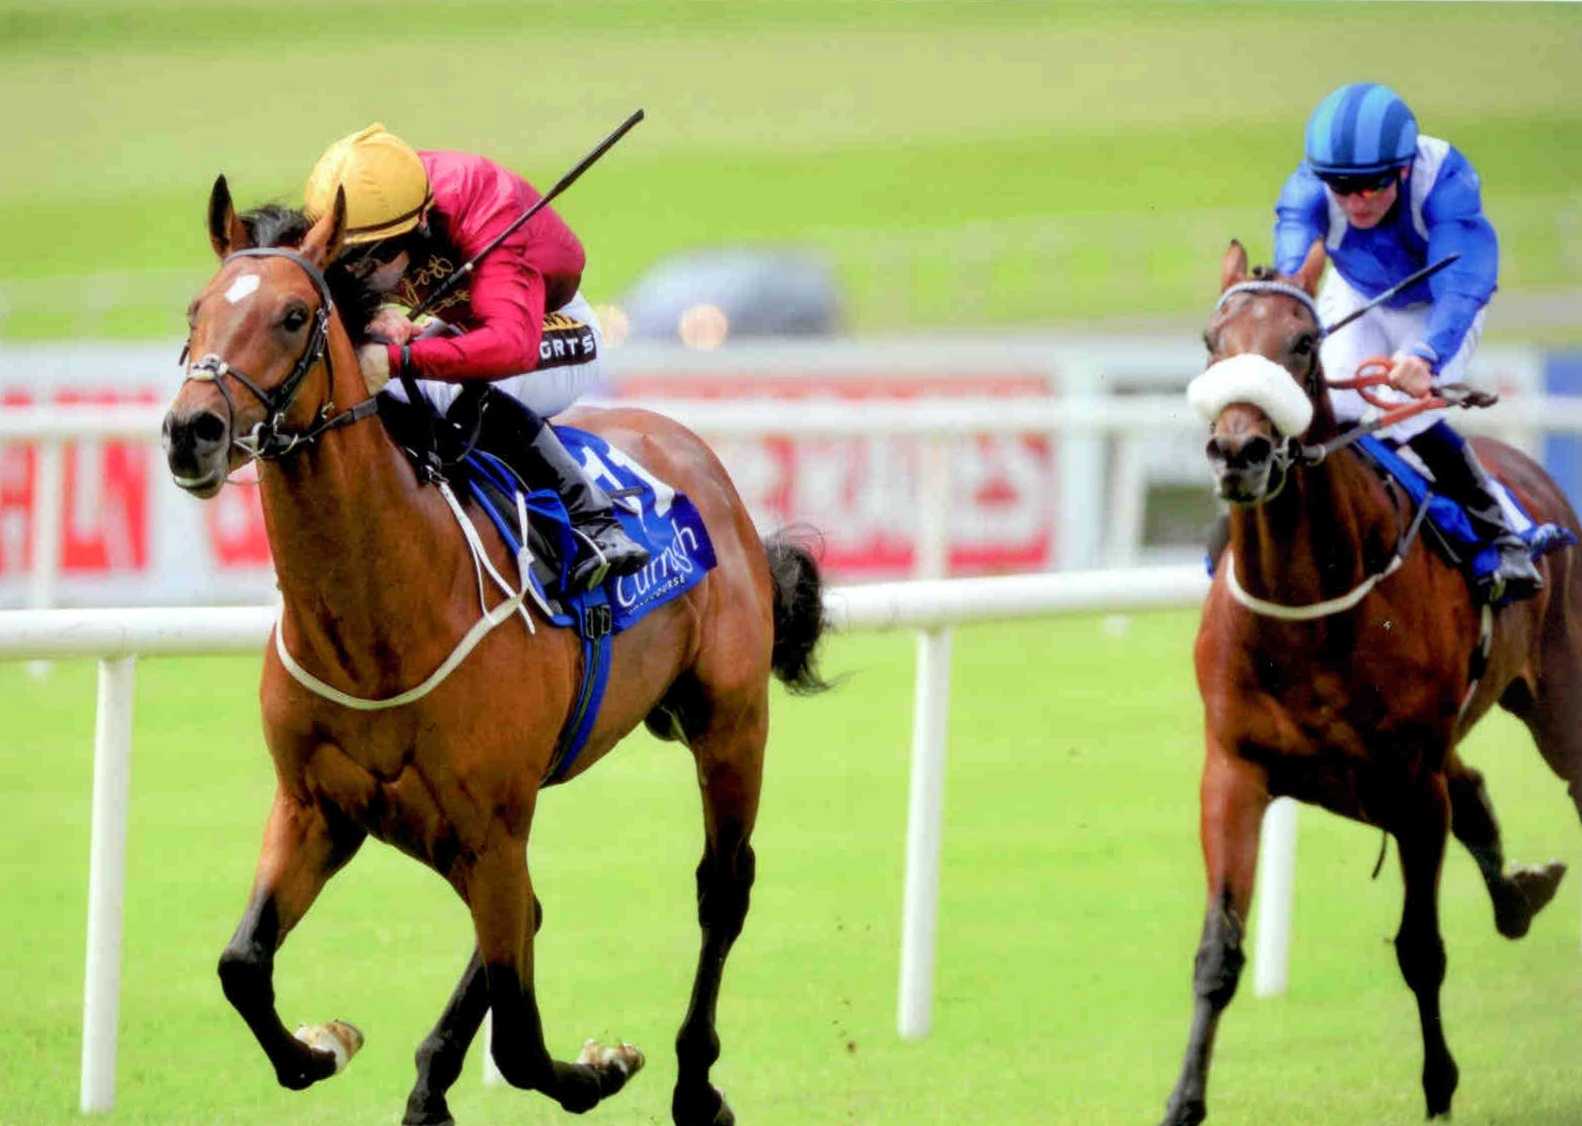 RESTIVE wins the competitive Anglesey Lodge Equine Hospital Maiden at the Curragh 9th Aug 2015